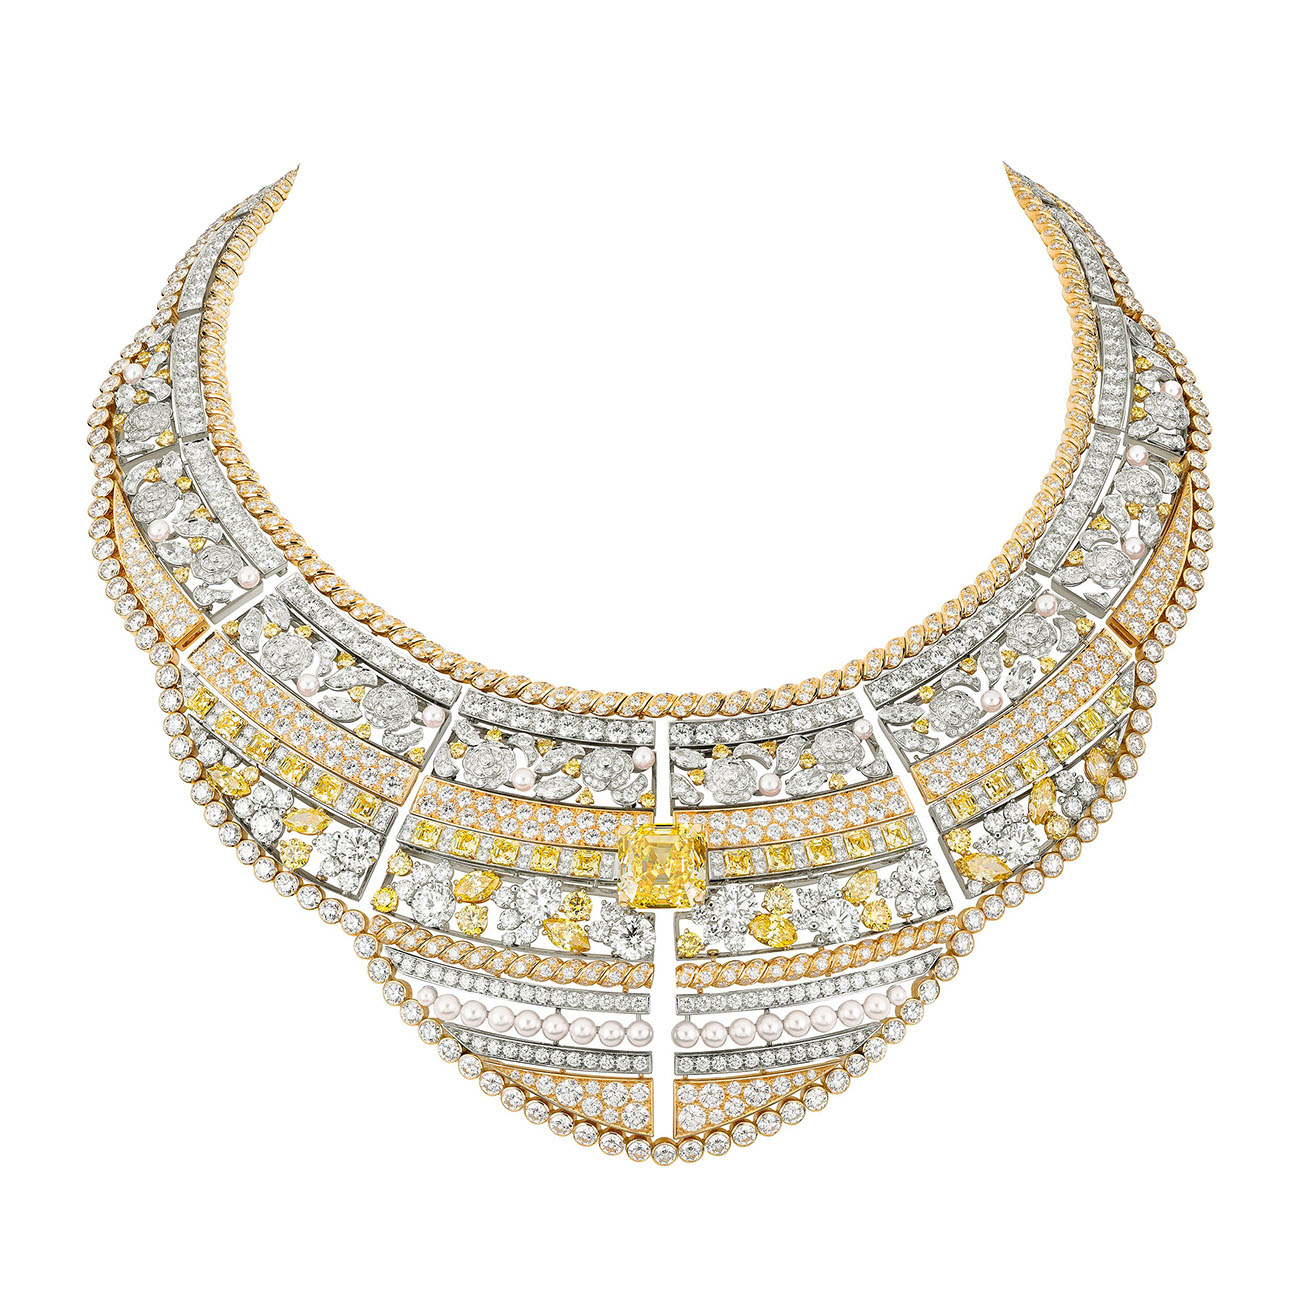 LE PARIS RUSSE DE CHANEL Roubachka necklace Chanel High Jewelry Collection